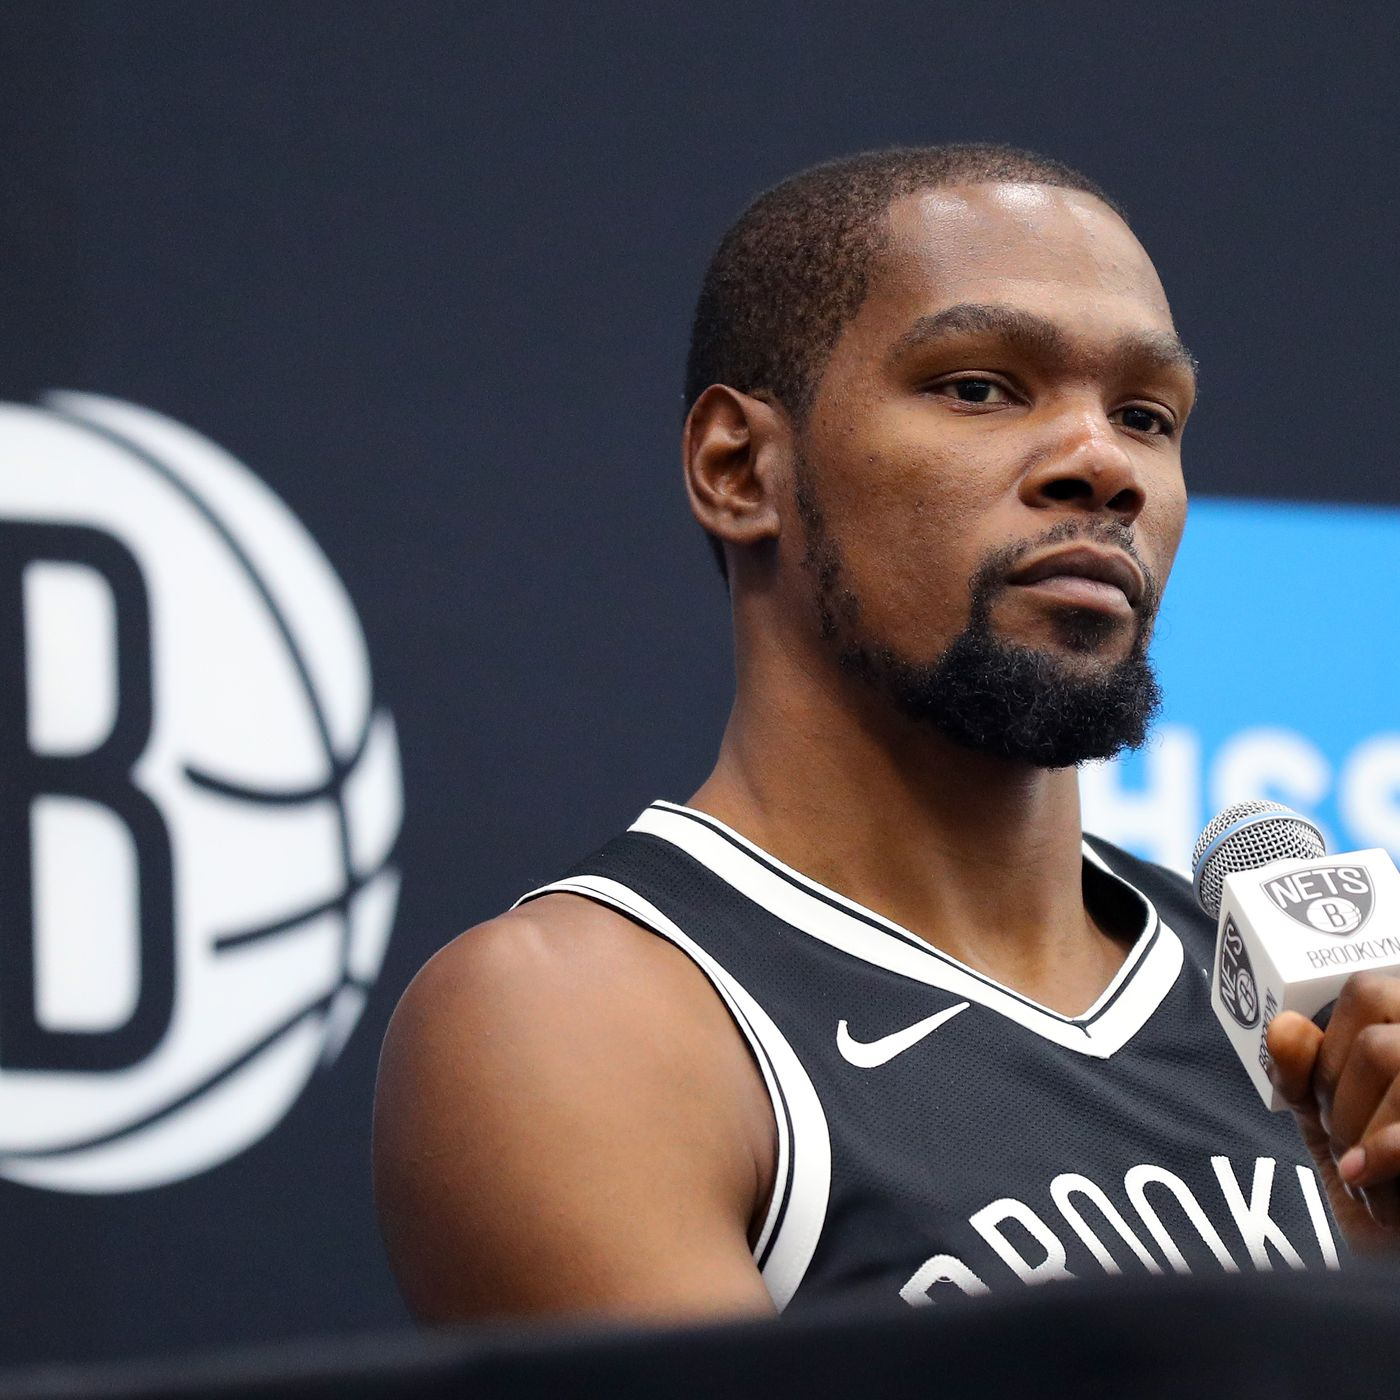 Eyewitness Accounts Tell Of A Kevin Durant Ready To Resume Career At A High Level Netsdaily